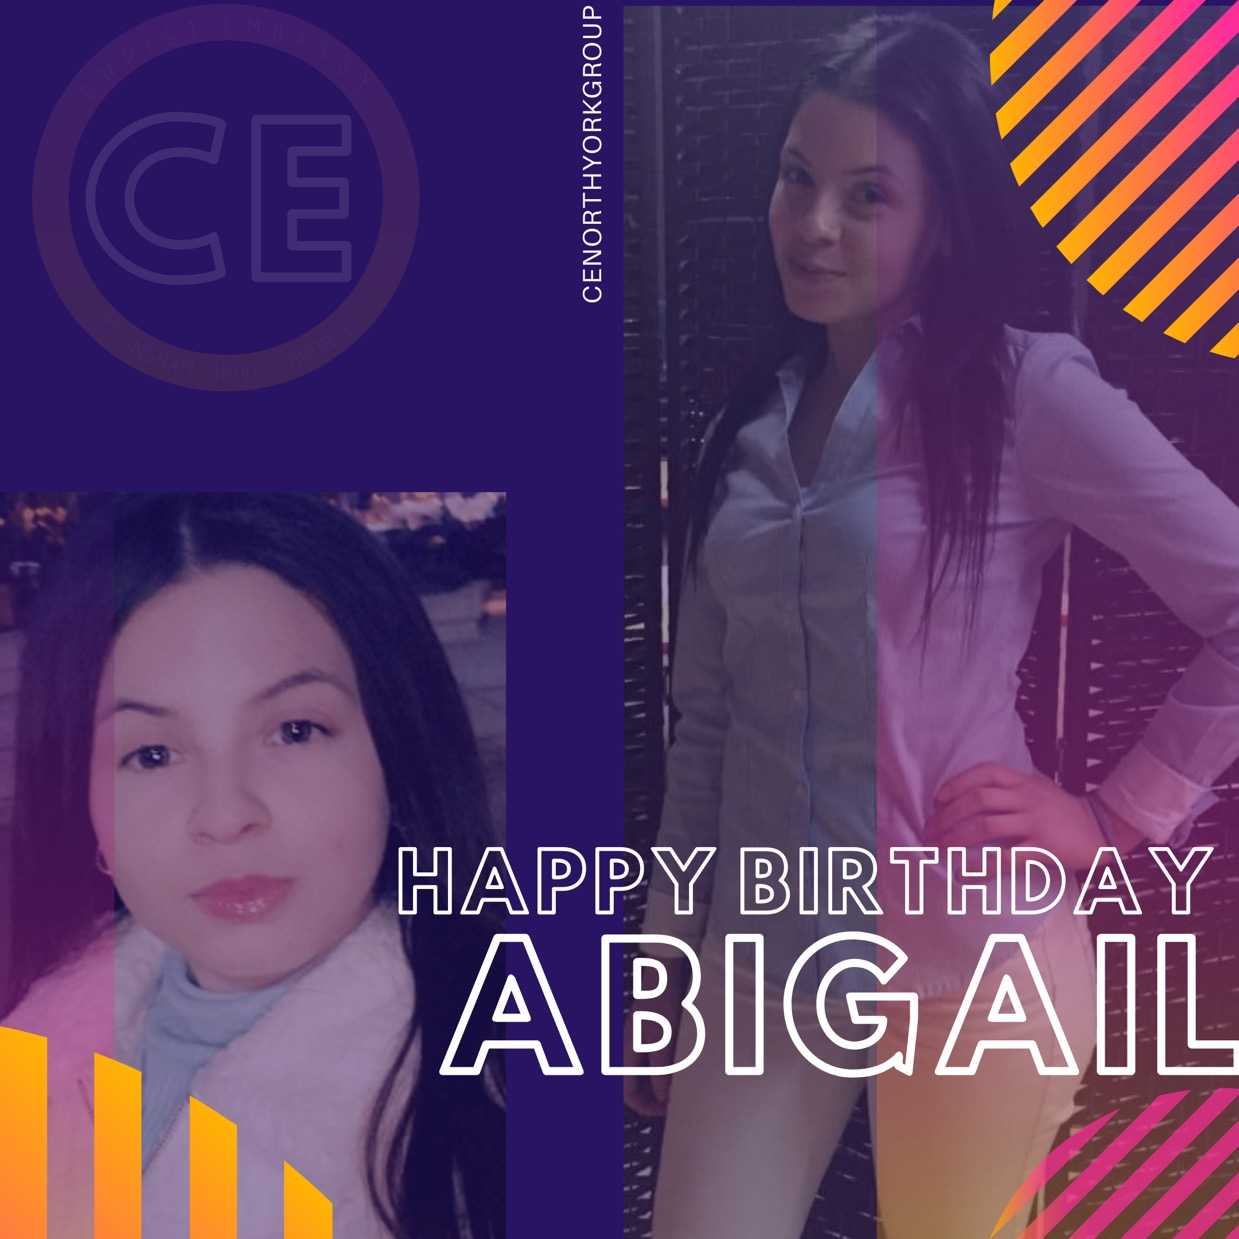 Happy Birthday dear Sis Abigail,